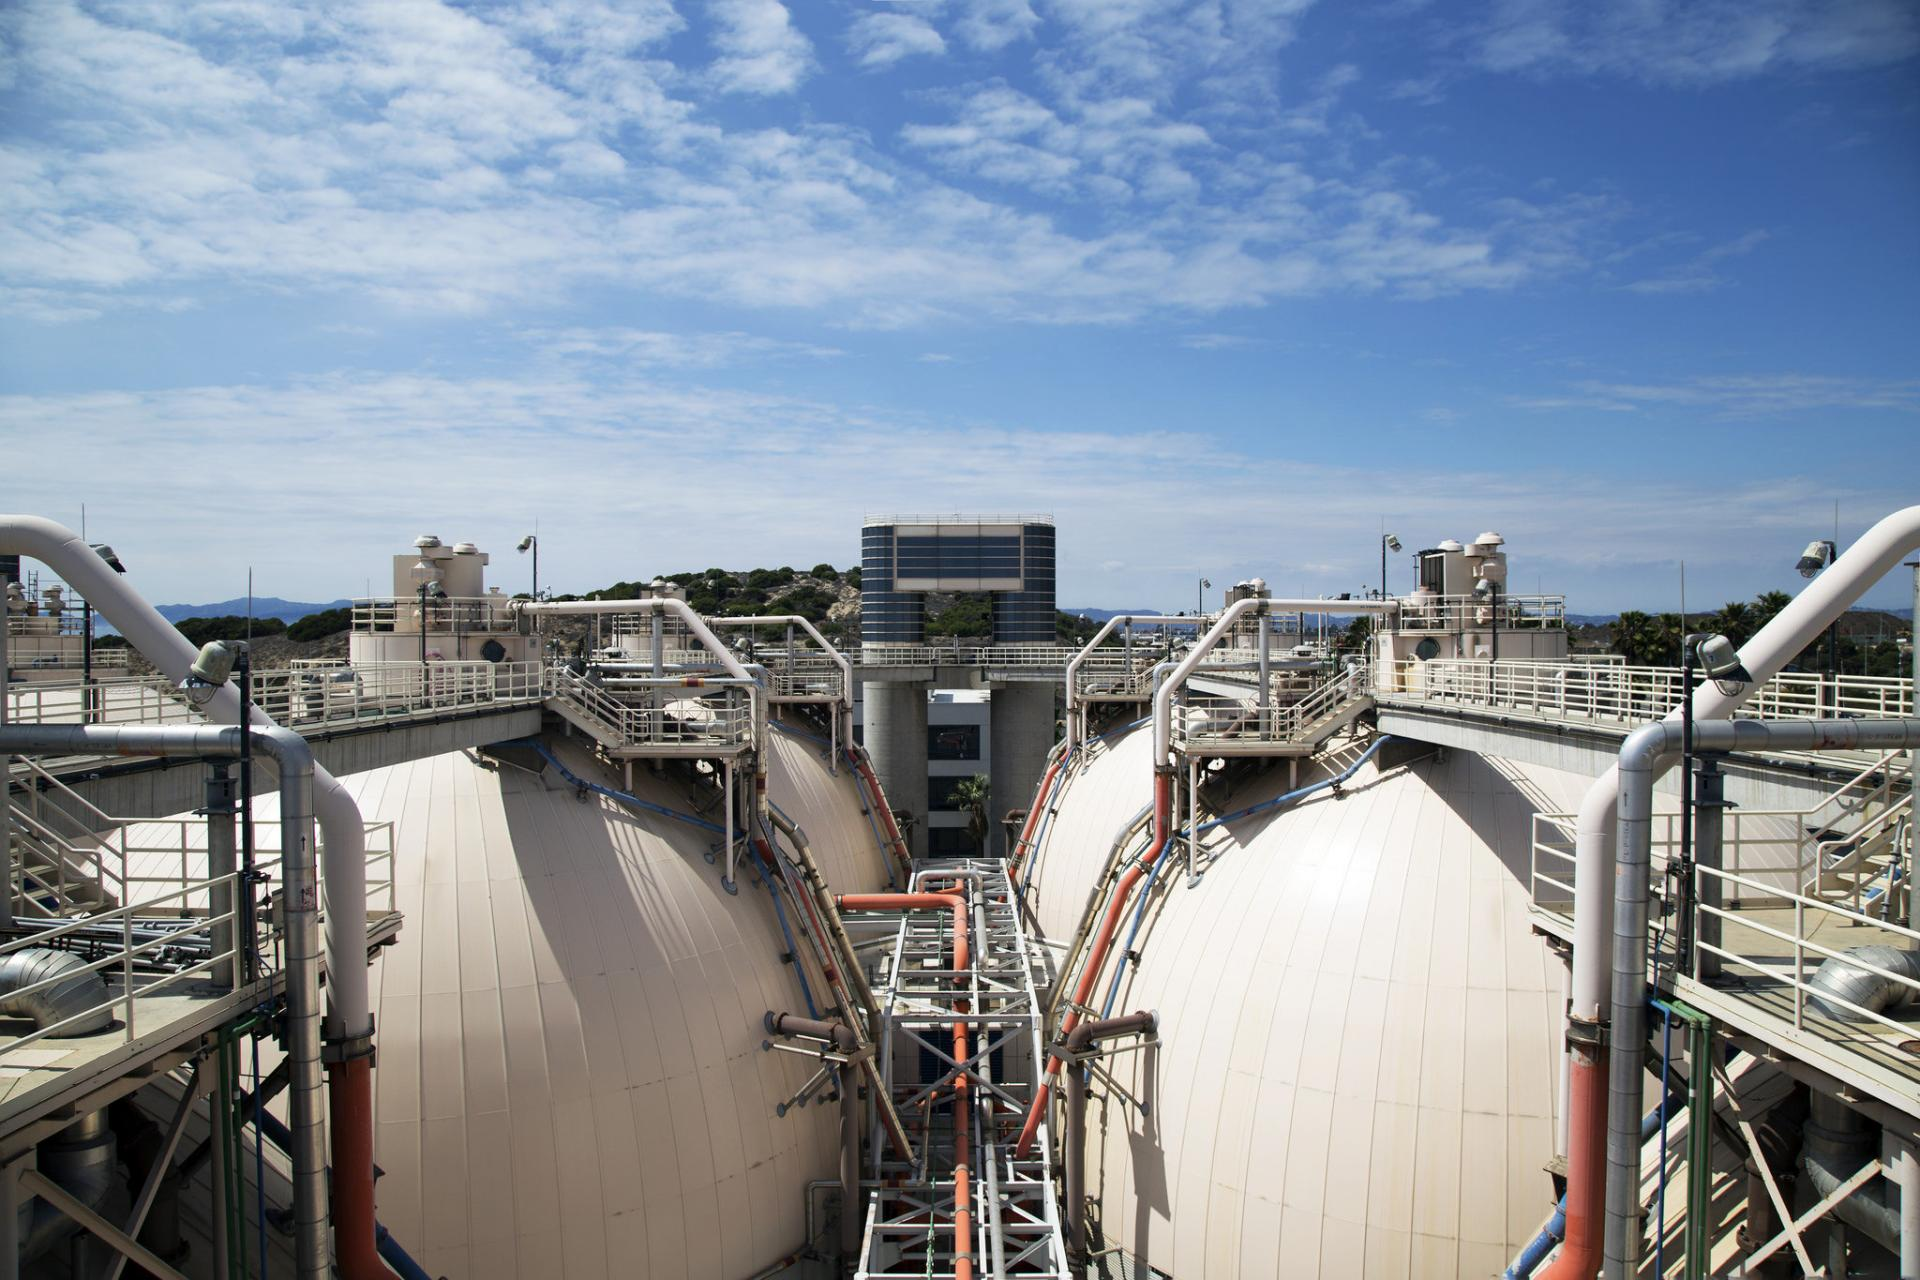 egg shaped digesters at the hyperion treatment plant